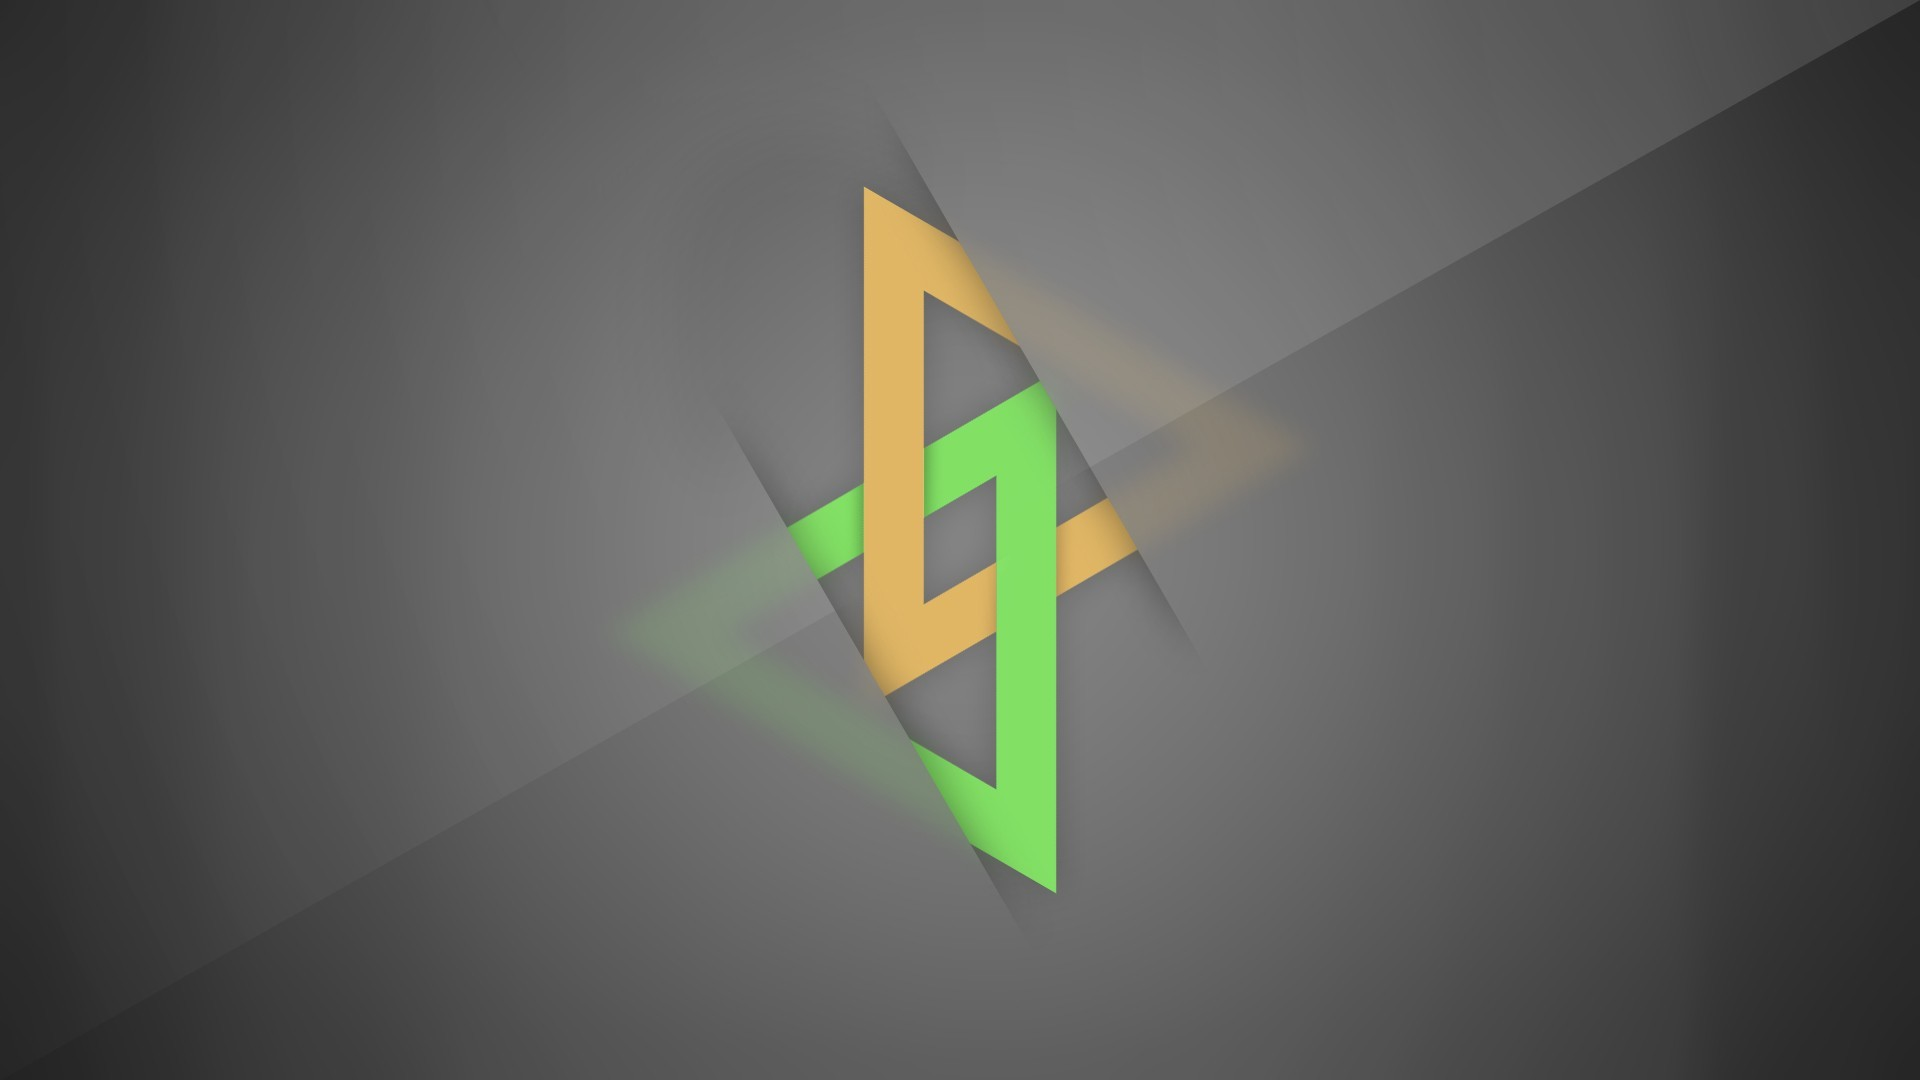 General 1920x1080 minimalism gray gray background digital art triangle yellow green lines shapes